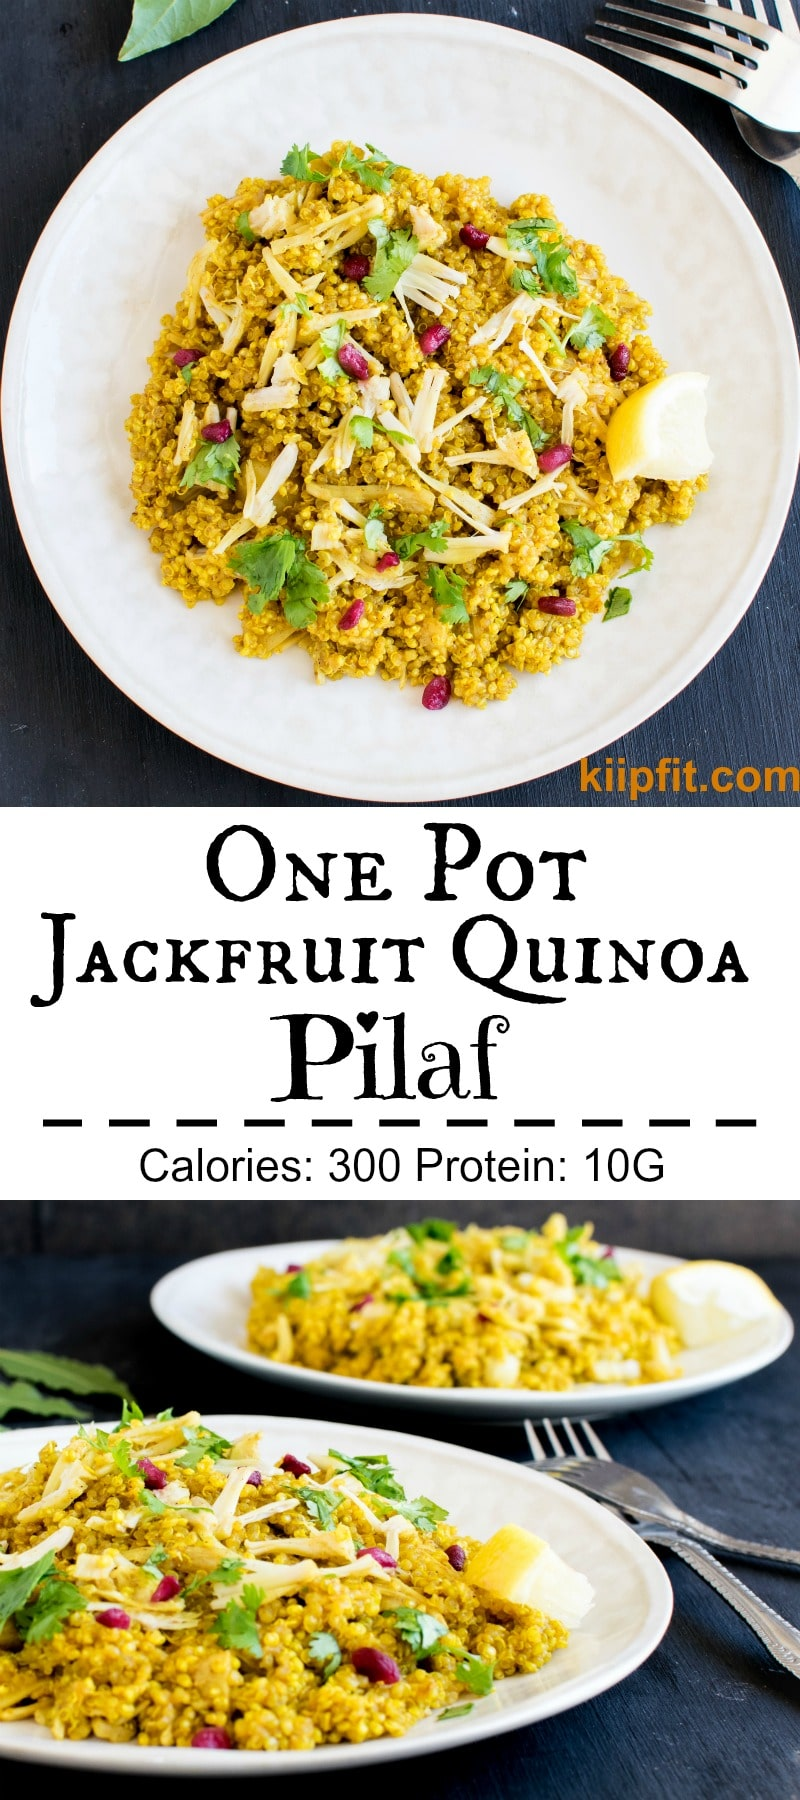 One Pot Jackfruit Quinoa Pilaf is my latest favorite for lunch and or dinner. It's a scrumptious satisfying meal with a medley of spices and herbs [ vegan + gf ] kiipfit.com